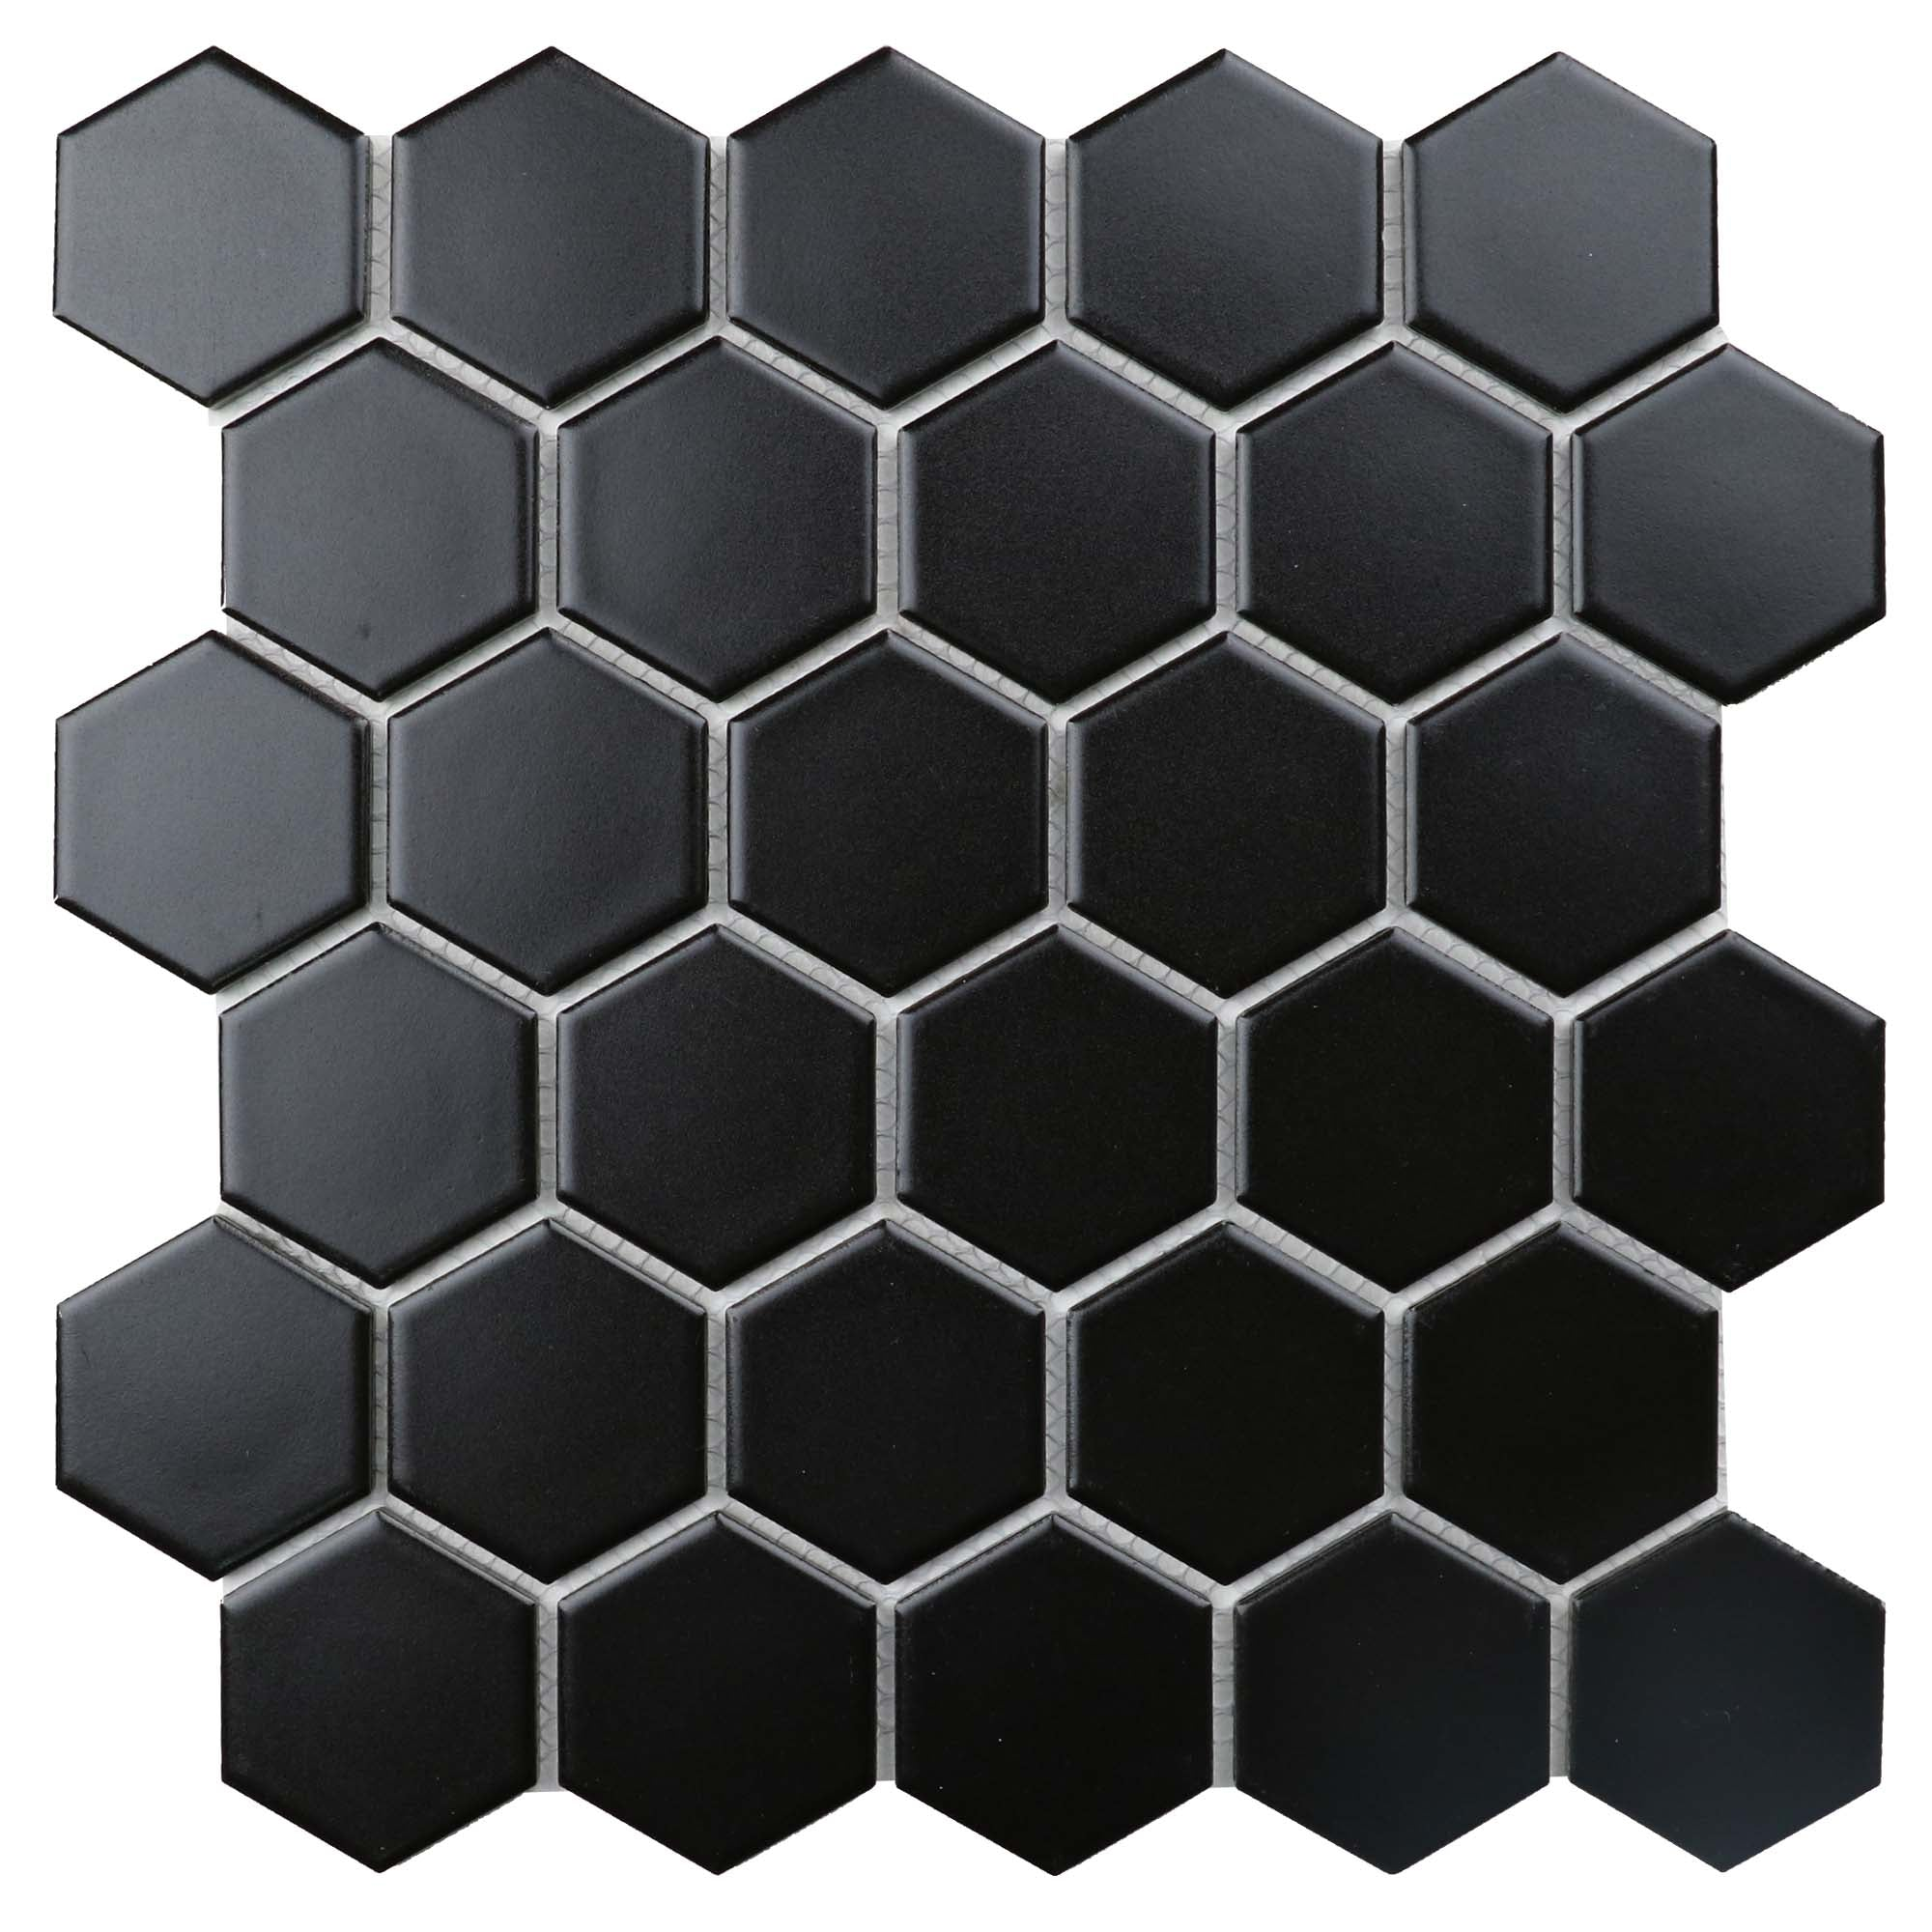 "Retro 2"" Hexagon Porcelain Tile, Matte Finished Floor & Wall Tile - 18 Square Feet Per Carton - Black"